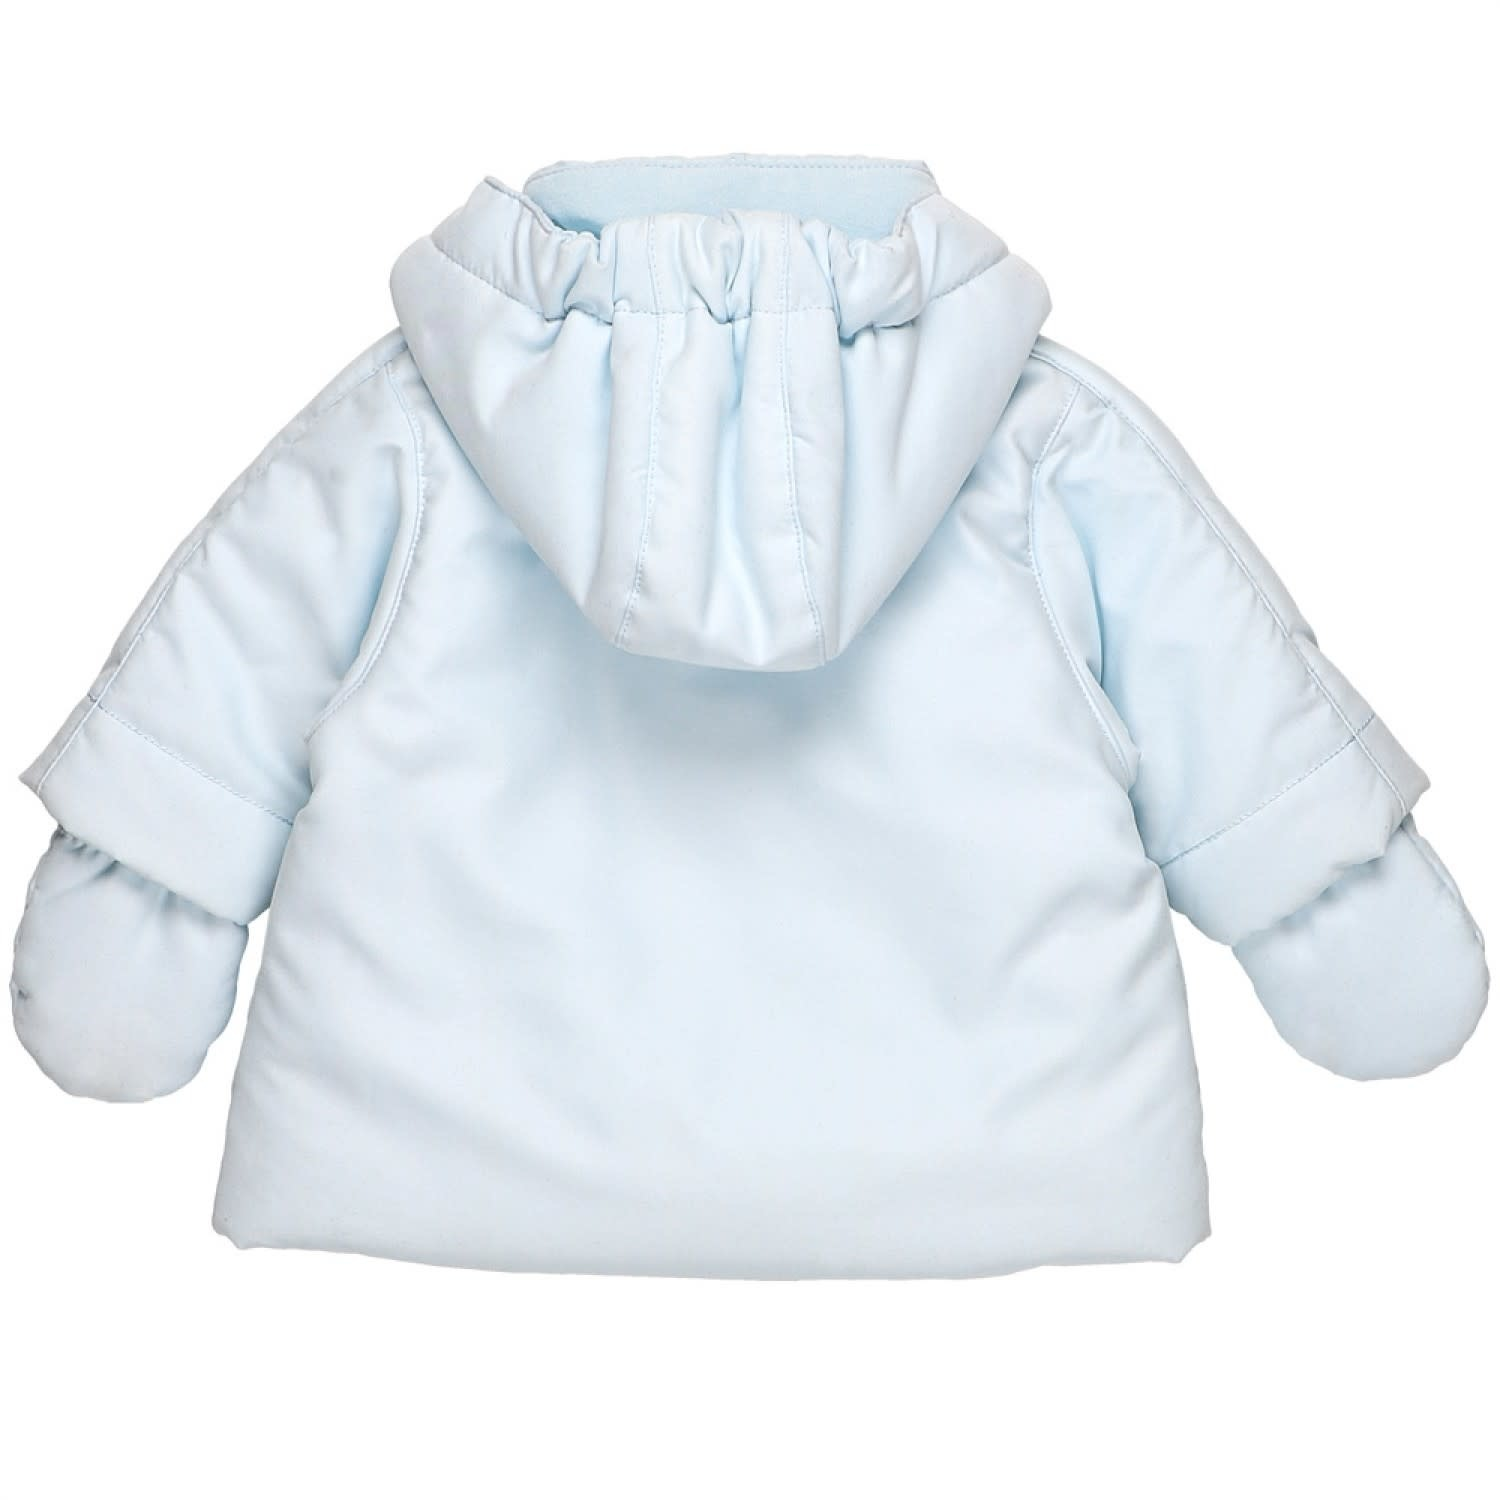 Emile et Rose Emile Et Rose 9301PB Pale blue Jacket With Mits